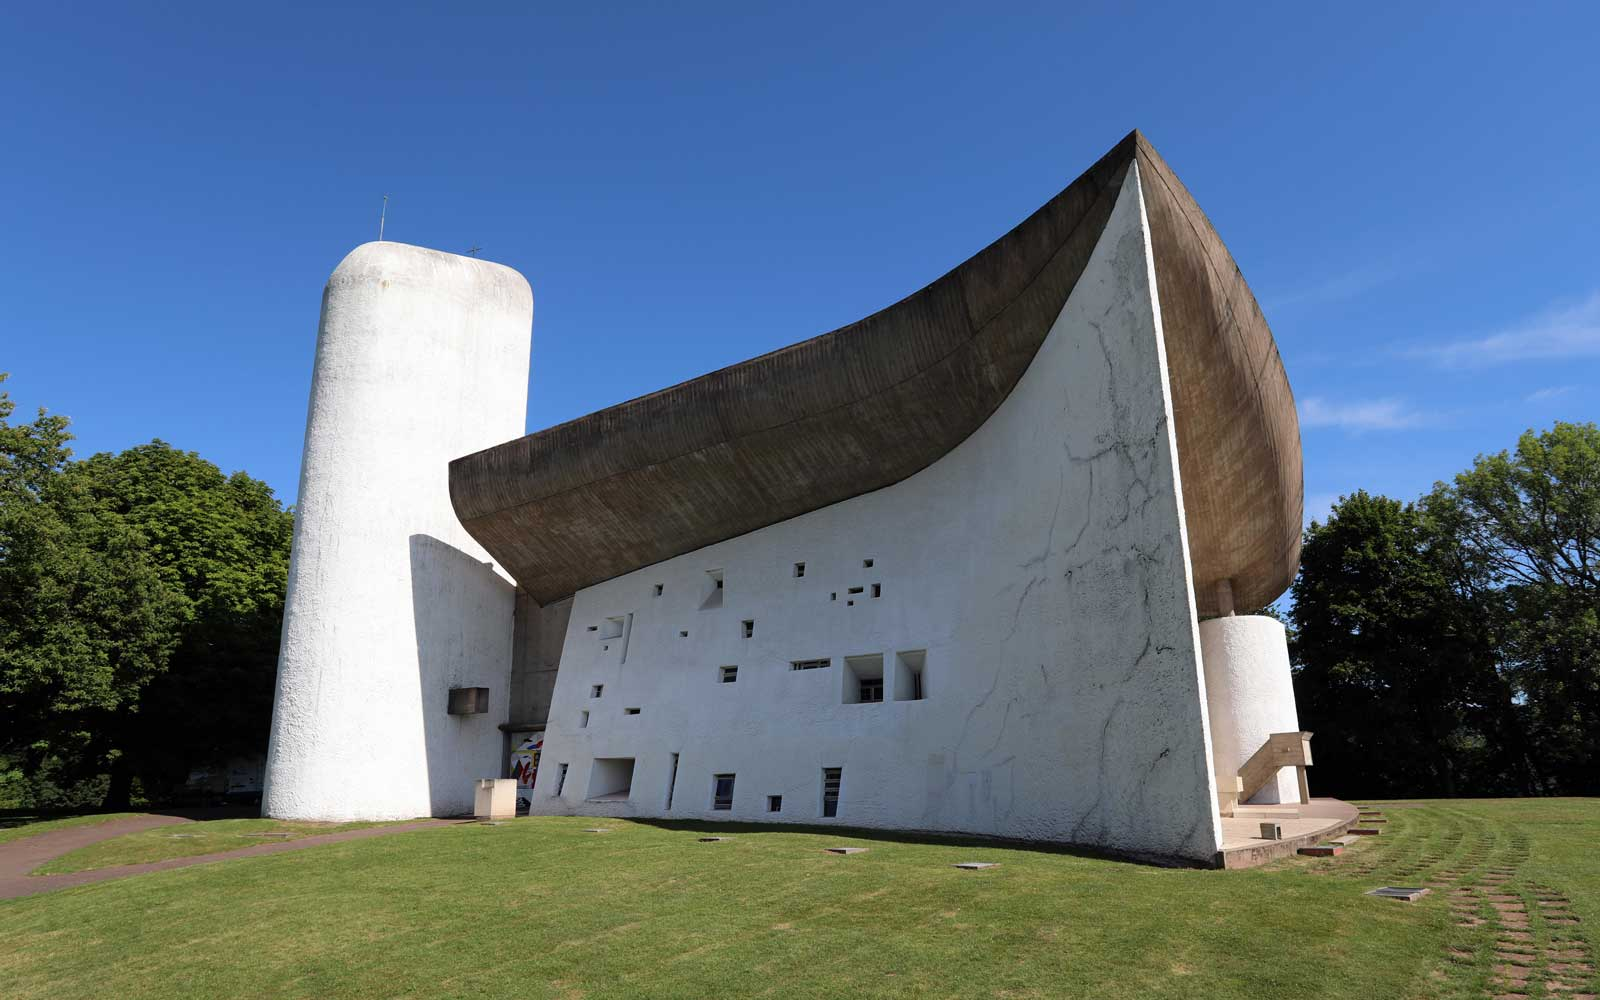 Notre Dame du Haut chapel in Ronchamp, France, designed by architect Le Corbusier. The chapel is on the UNESCO World Heritage List.